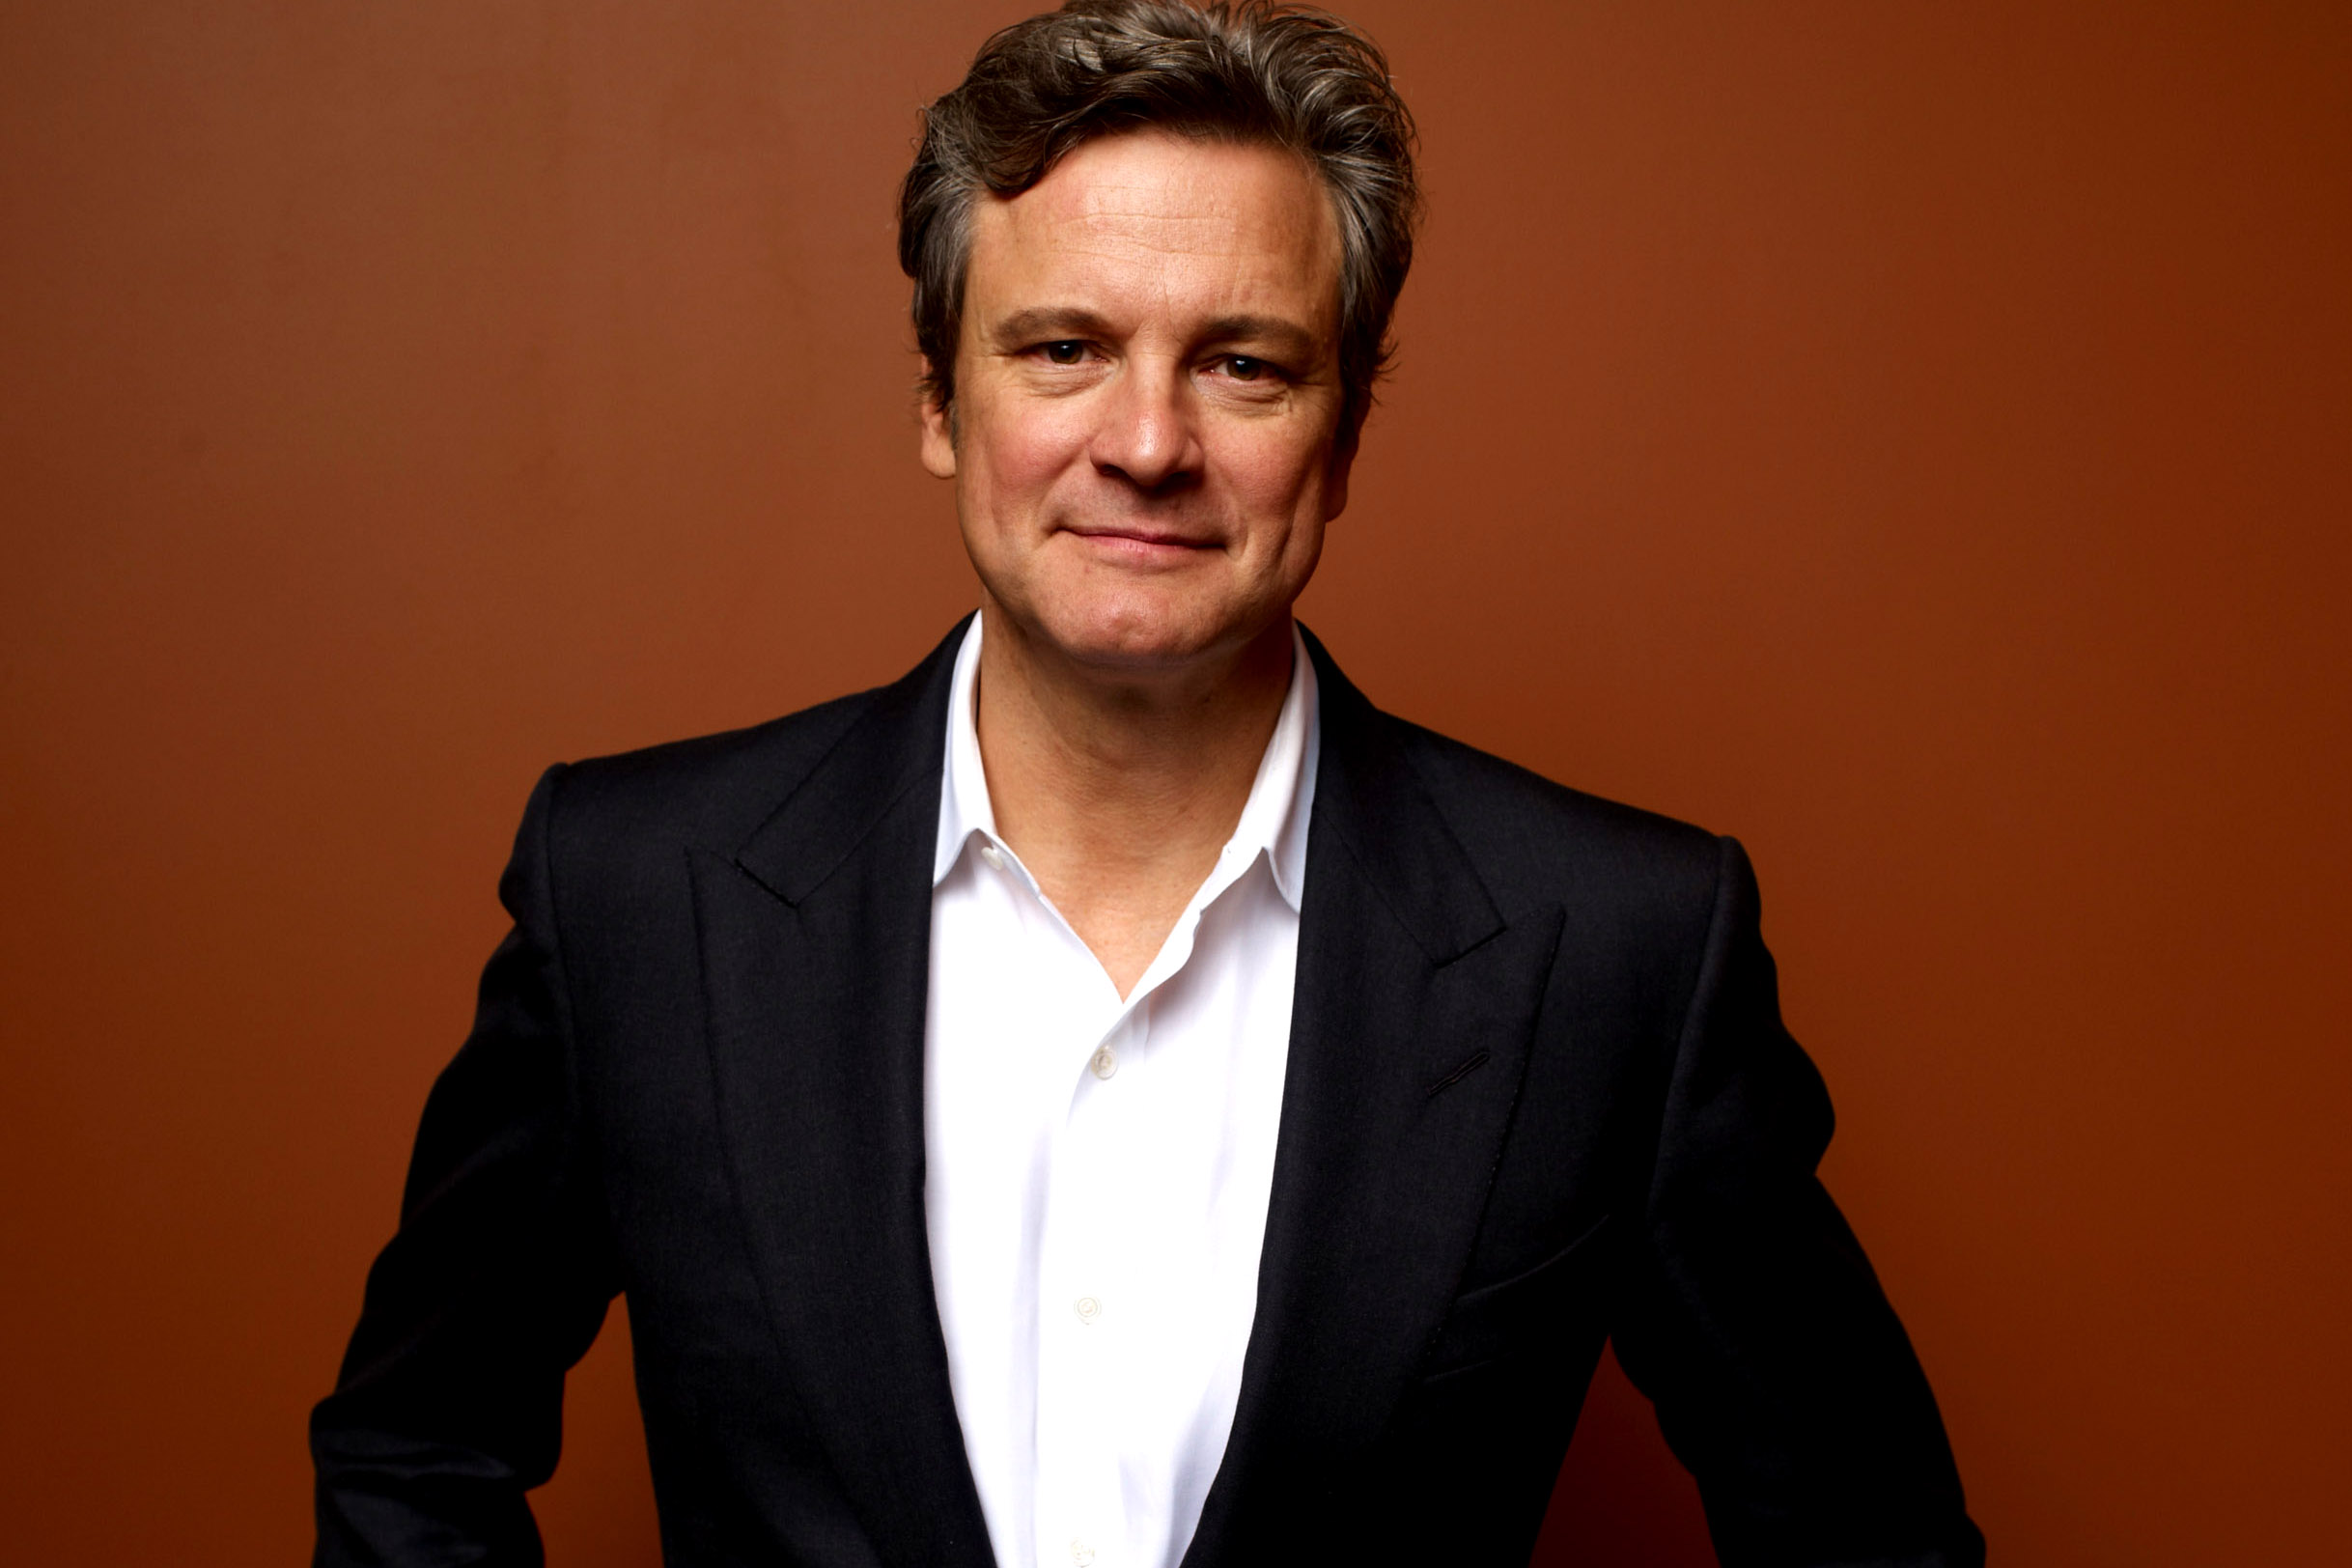 Colin Firth: Net worth...